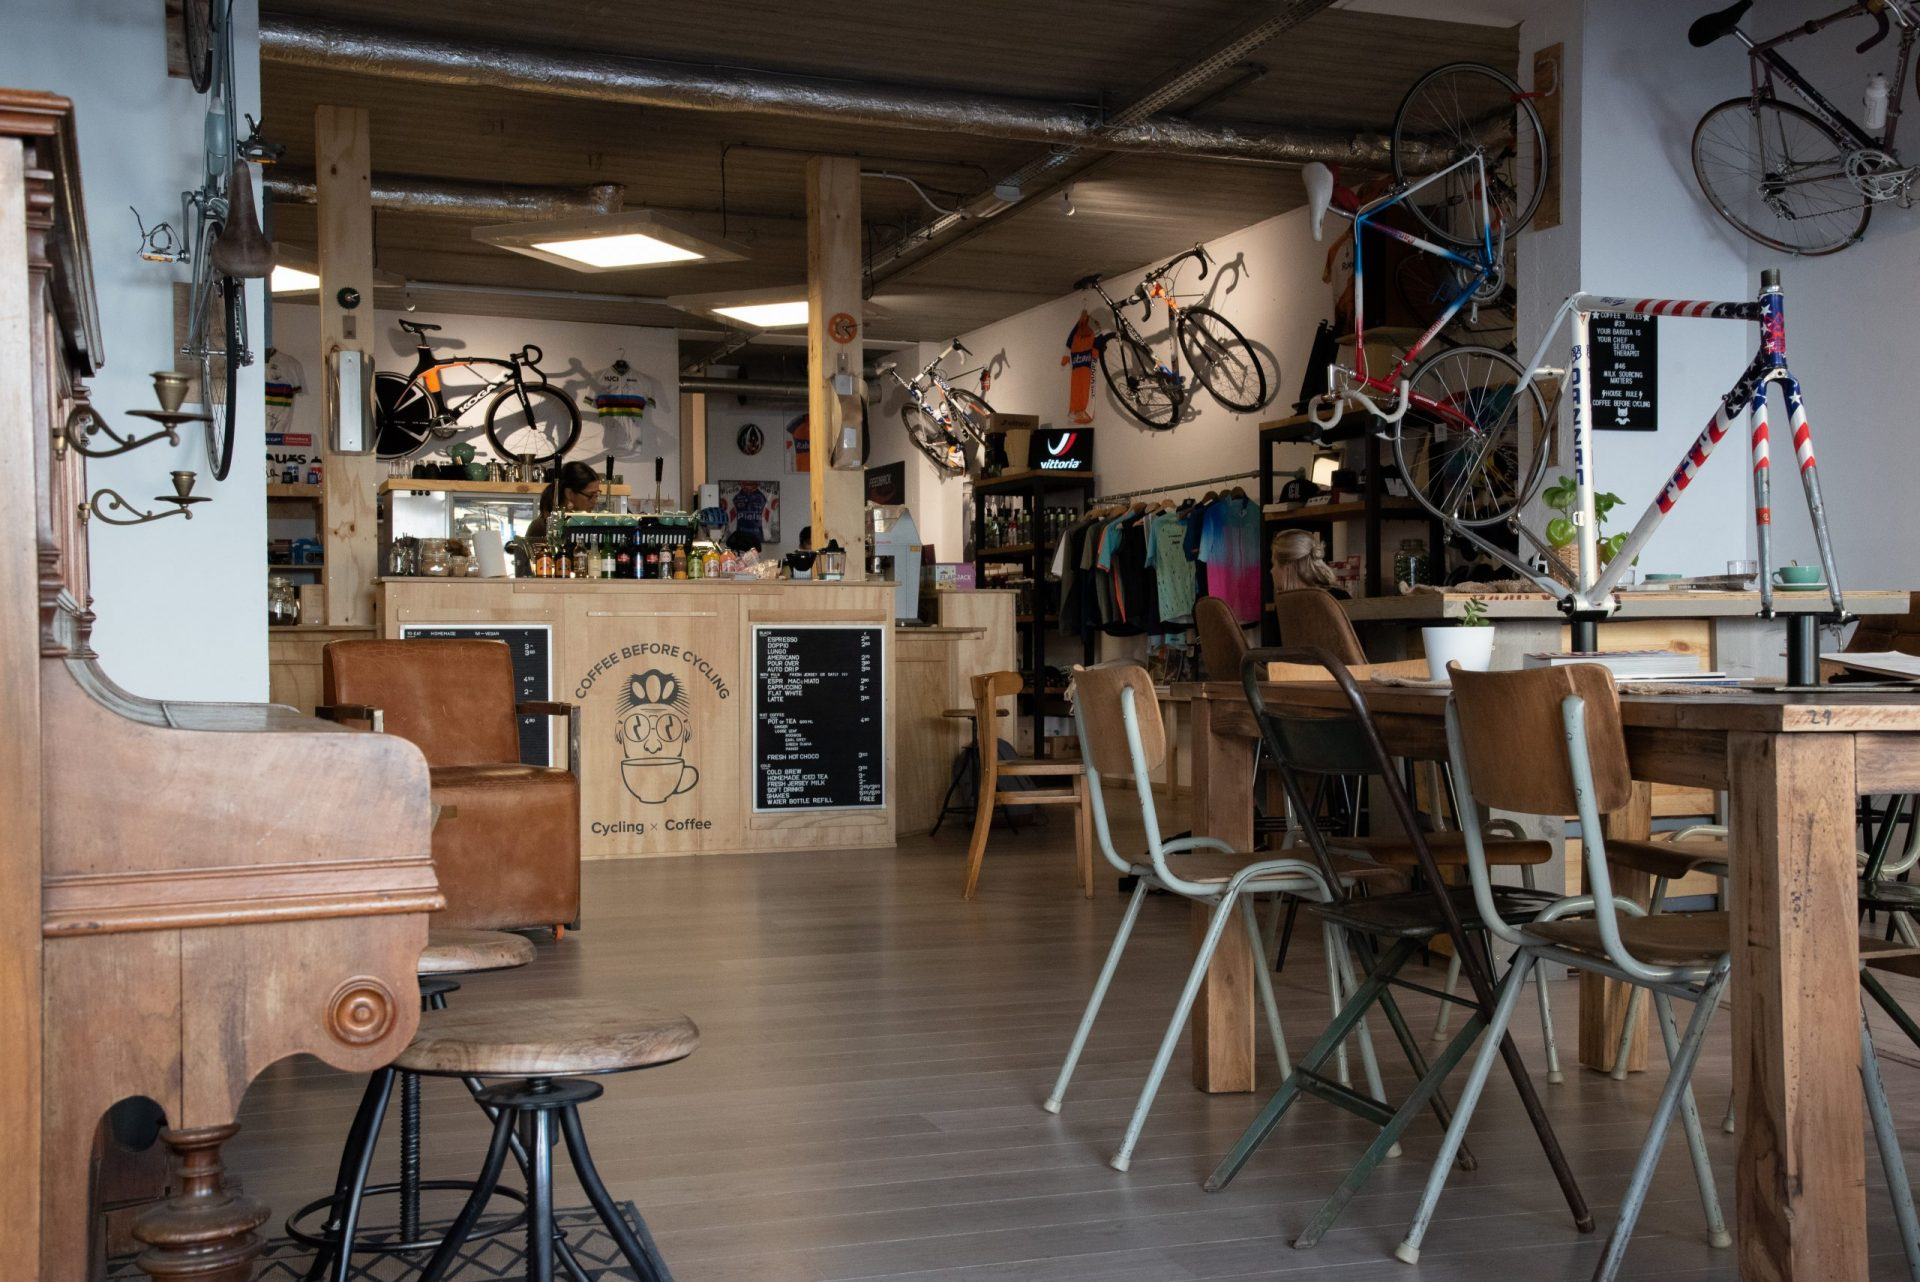 Koffietje.nl - Fixed gear coffee